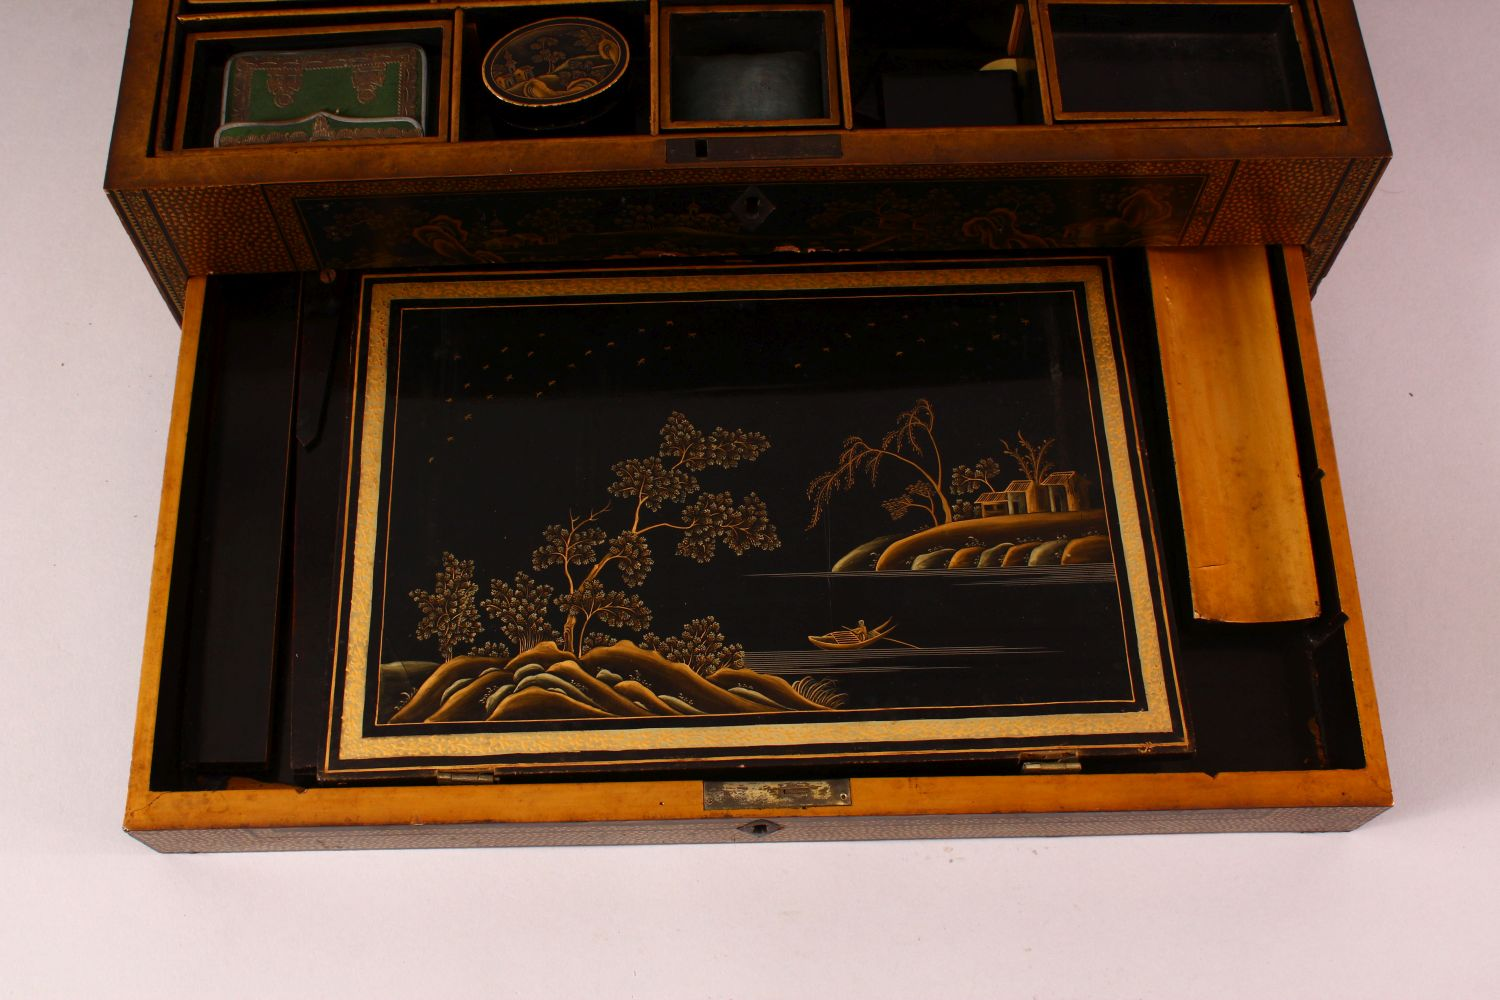 A CHINESE EXPORT LACQUER AND GILT SEWING BOX, the box containing lift out tray with nine - Image 5 of 7